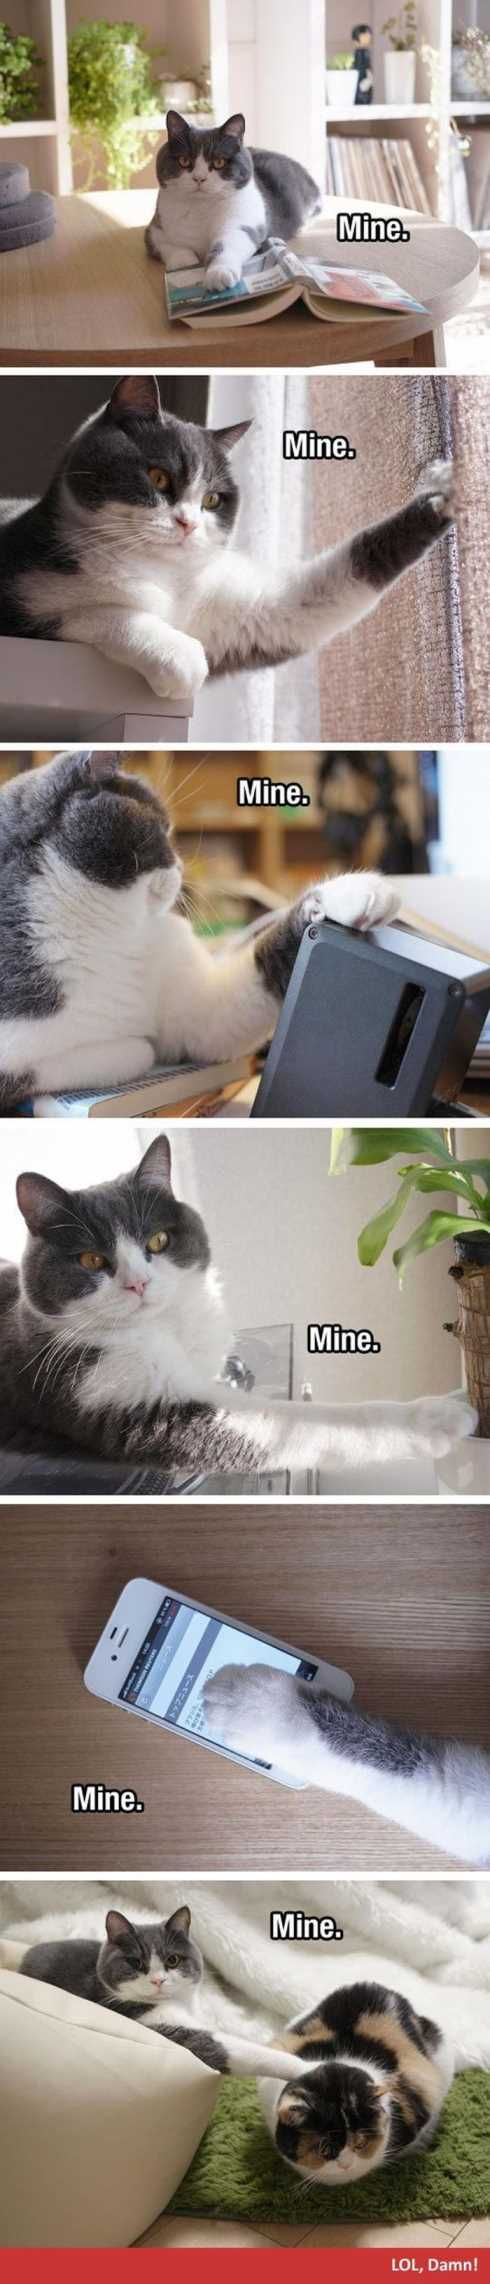 66-funny-pictures-you-will-absolutely-love-064